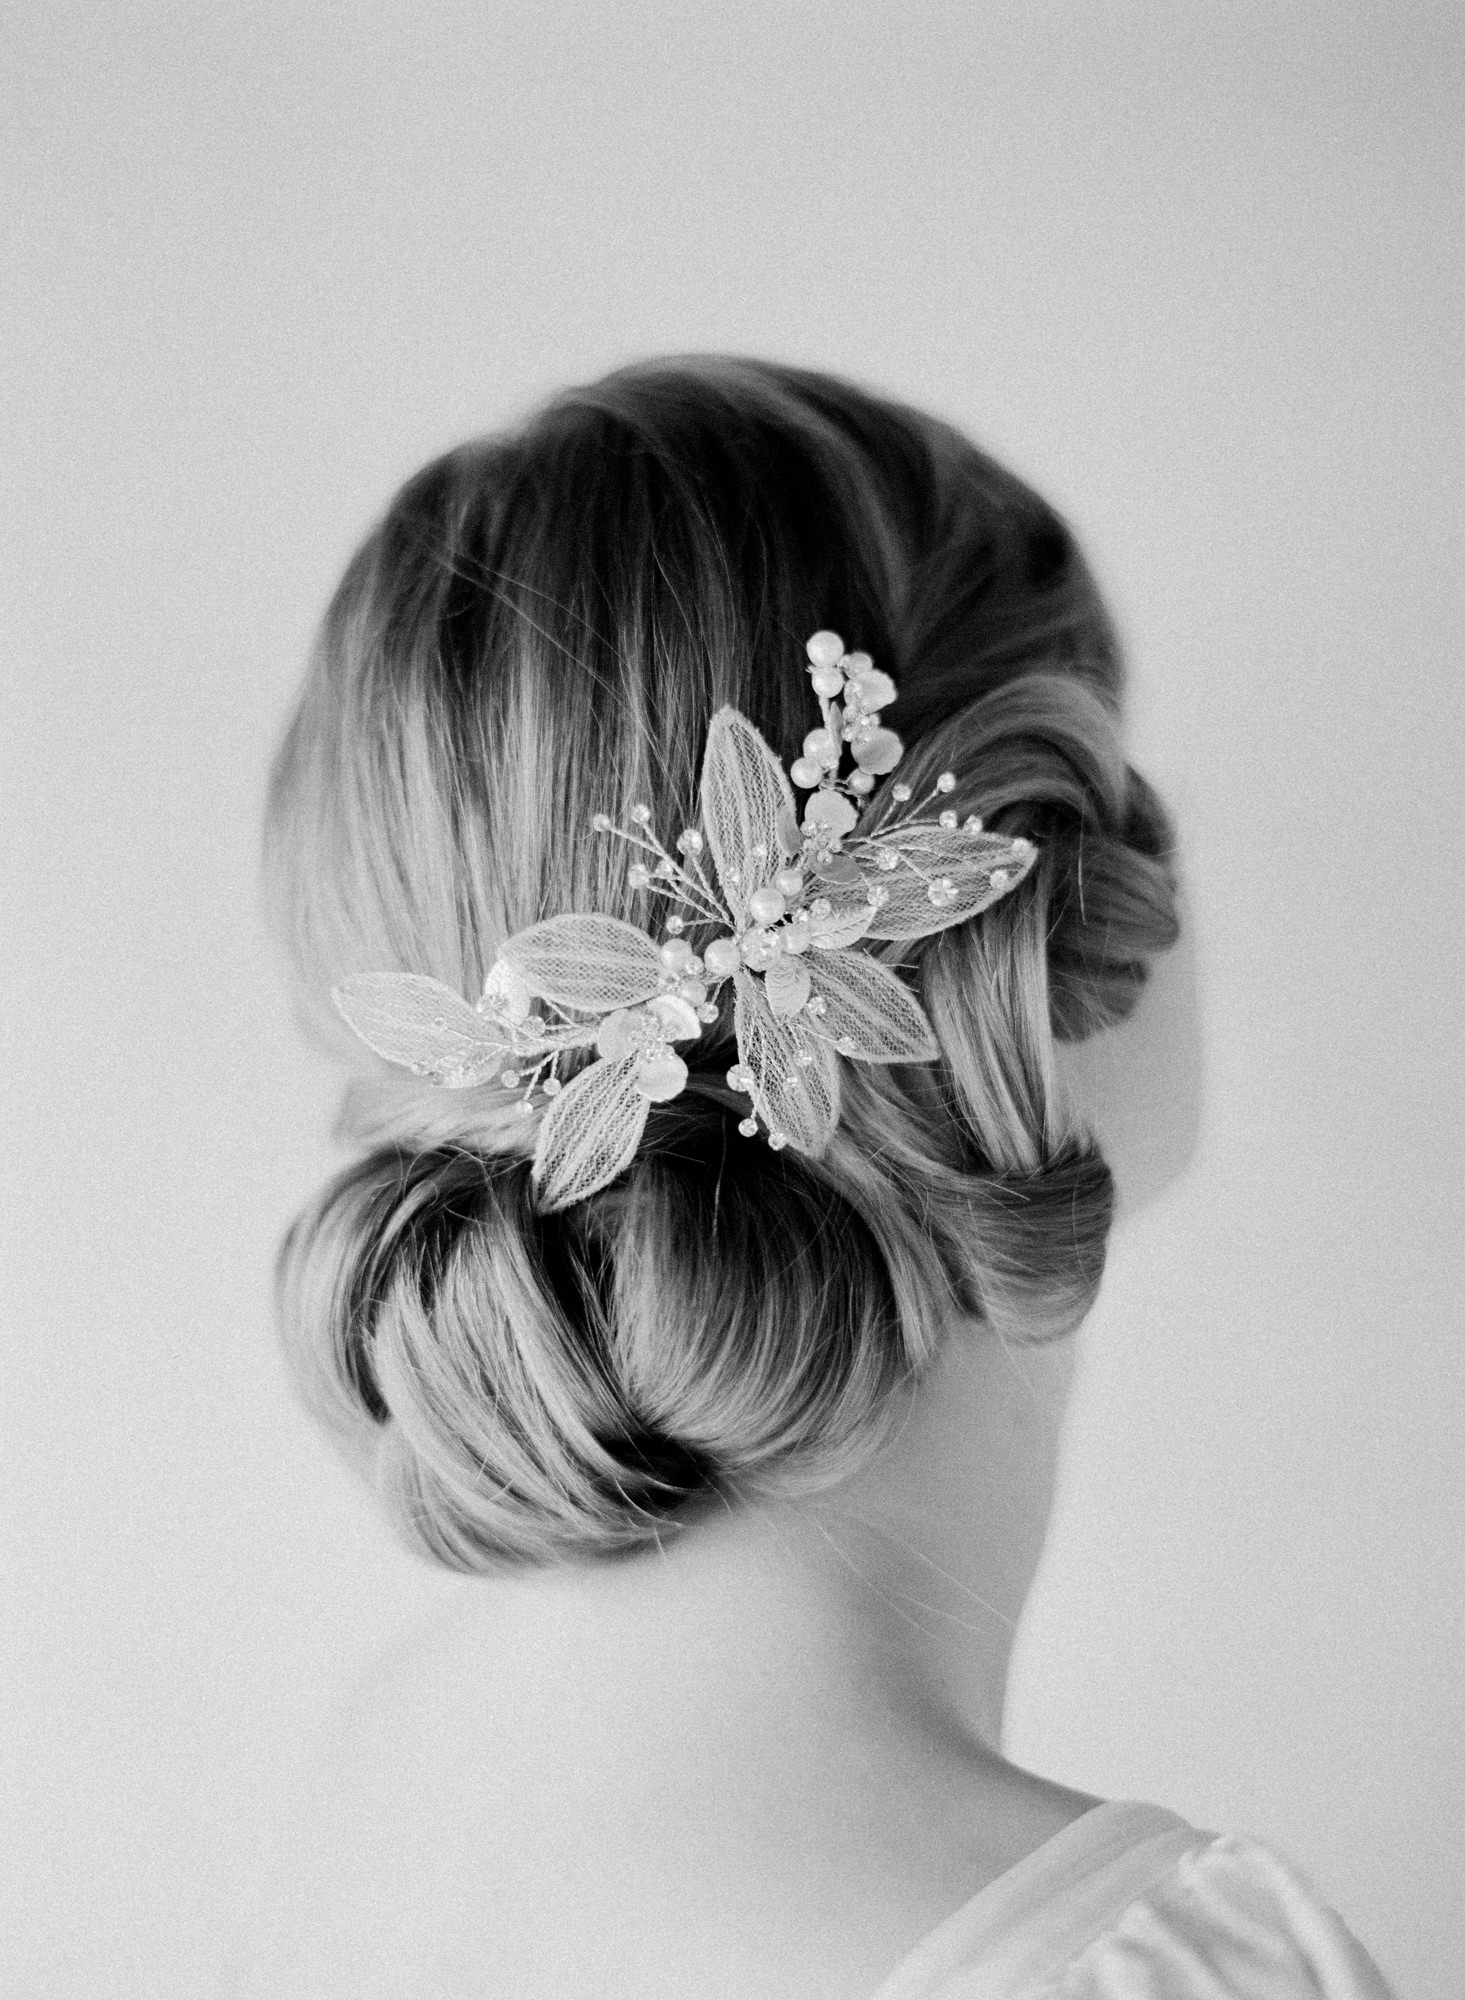 worlds-best-wedding-photos-classic-chignon-lace-floral-hair-accessory-jen-huang-los-angeles-wedding-photographer